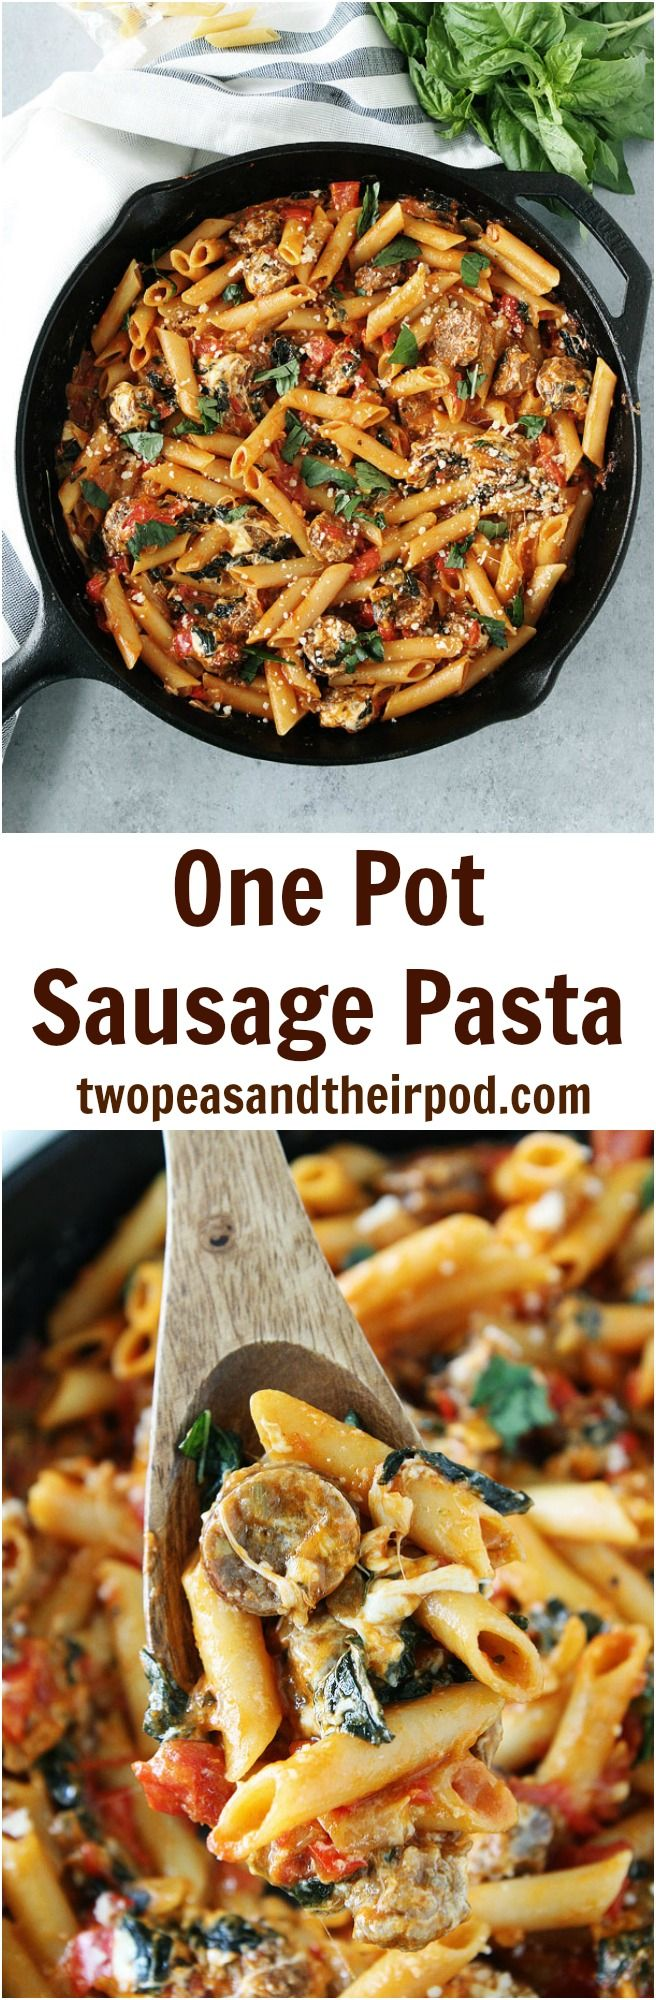 One Pot Sausage Pasta Recipe on twopeasandtheirpod.com You only need one pan and 30 minutes to make this delicious sausage pasta dish for dinner! It is a family favorite!